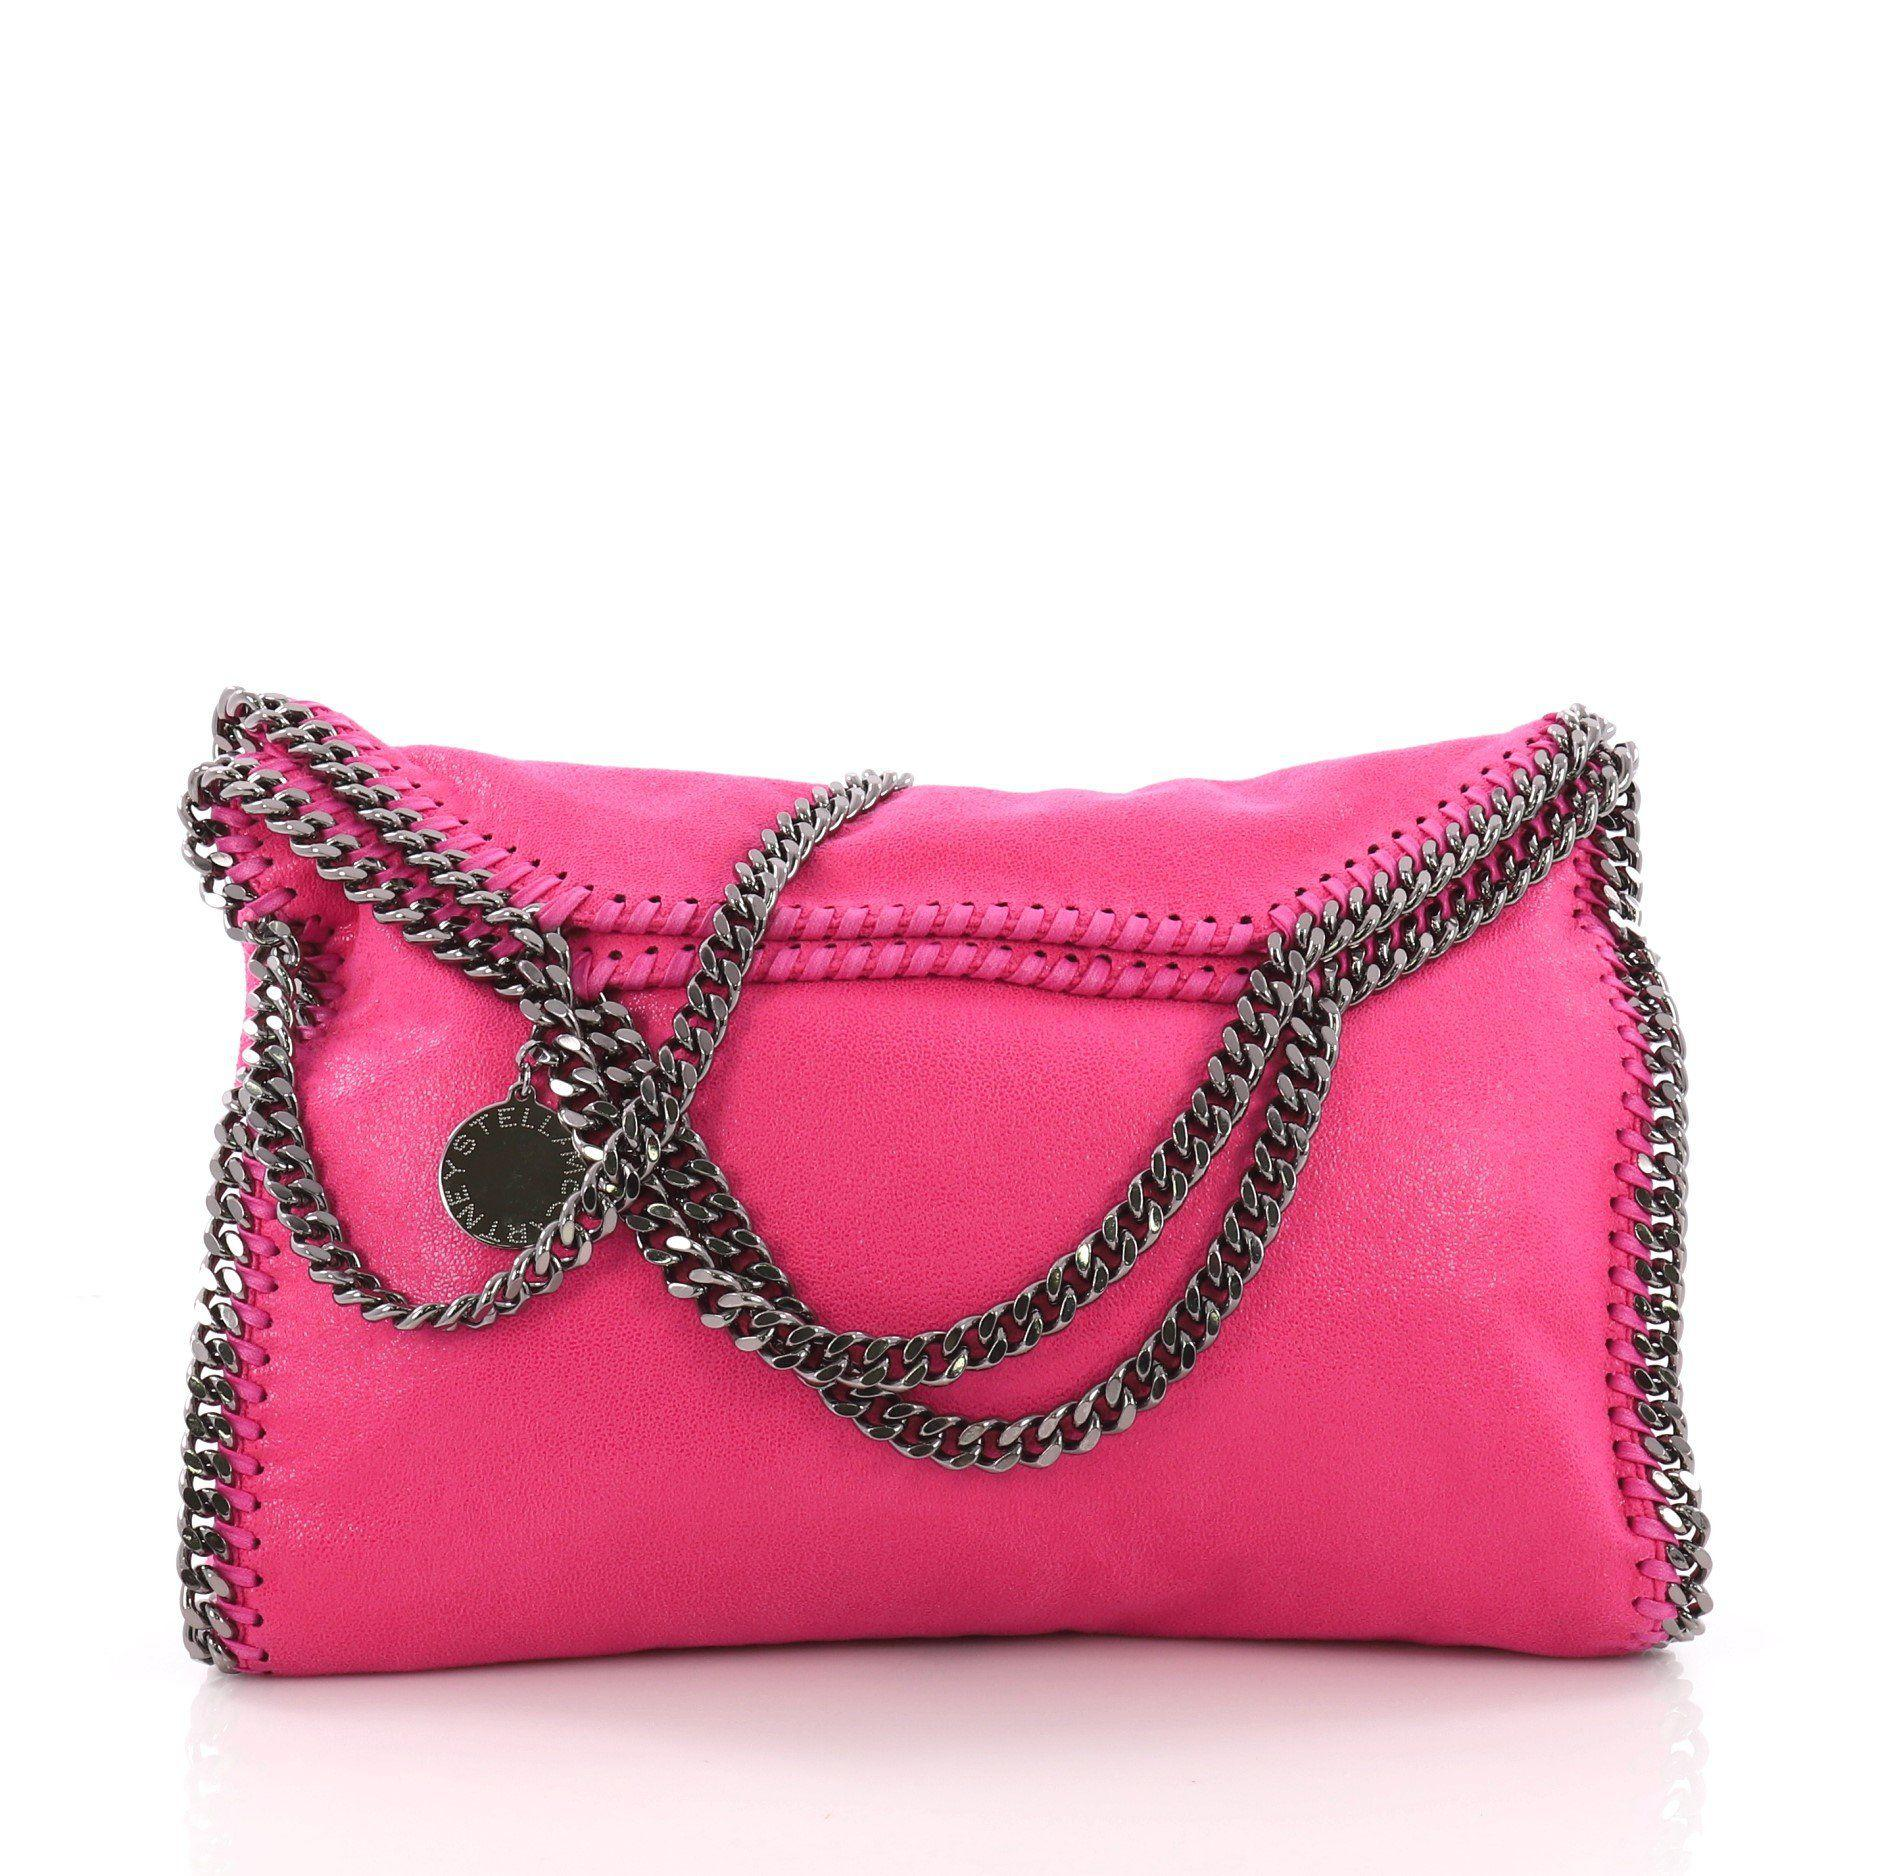 Stella McCartney. Women s Pink Pre Owned Falabella Fold Over Bag Shaggy Deer 07a696360eec8